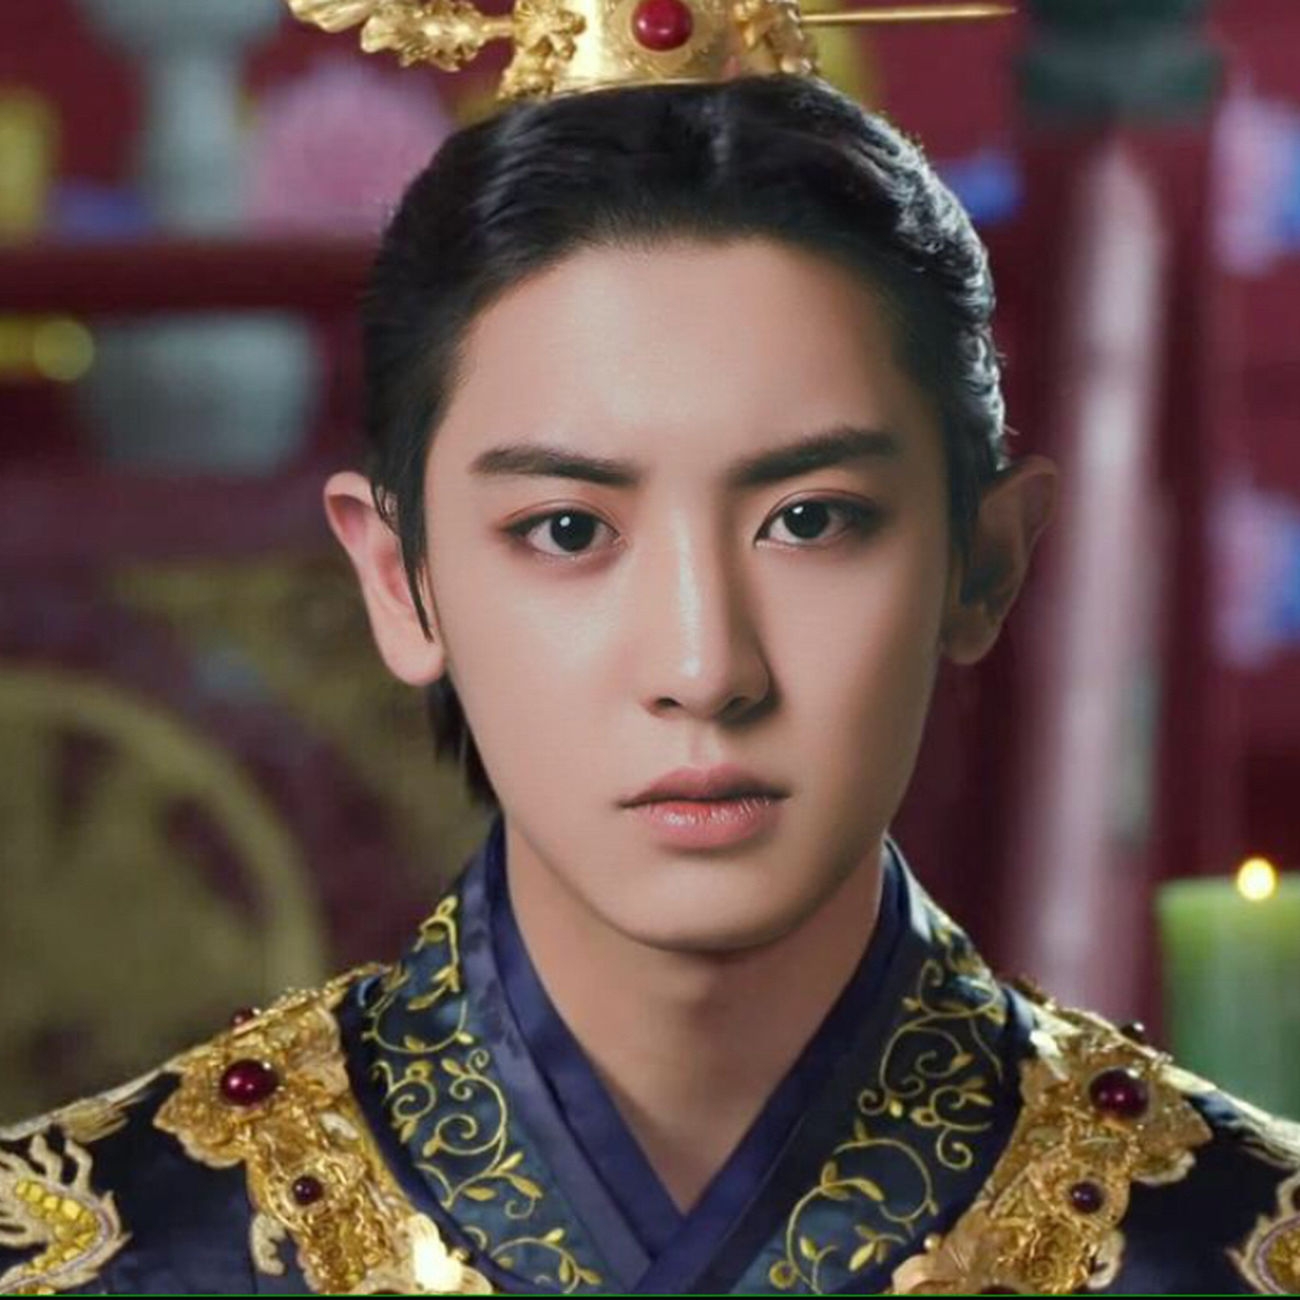 EXO Chanyeol Park Chanyeol Exok Korean Oppa Handsome Classic Drama King